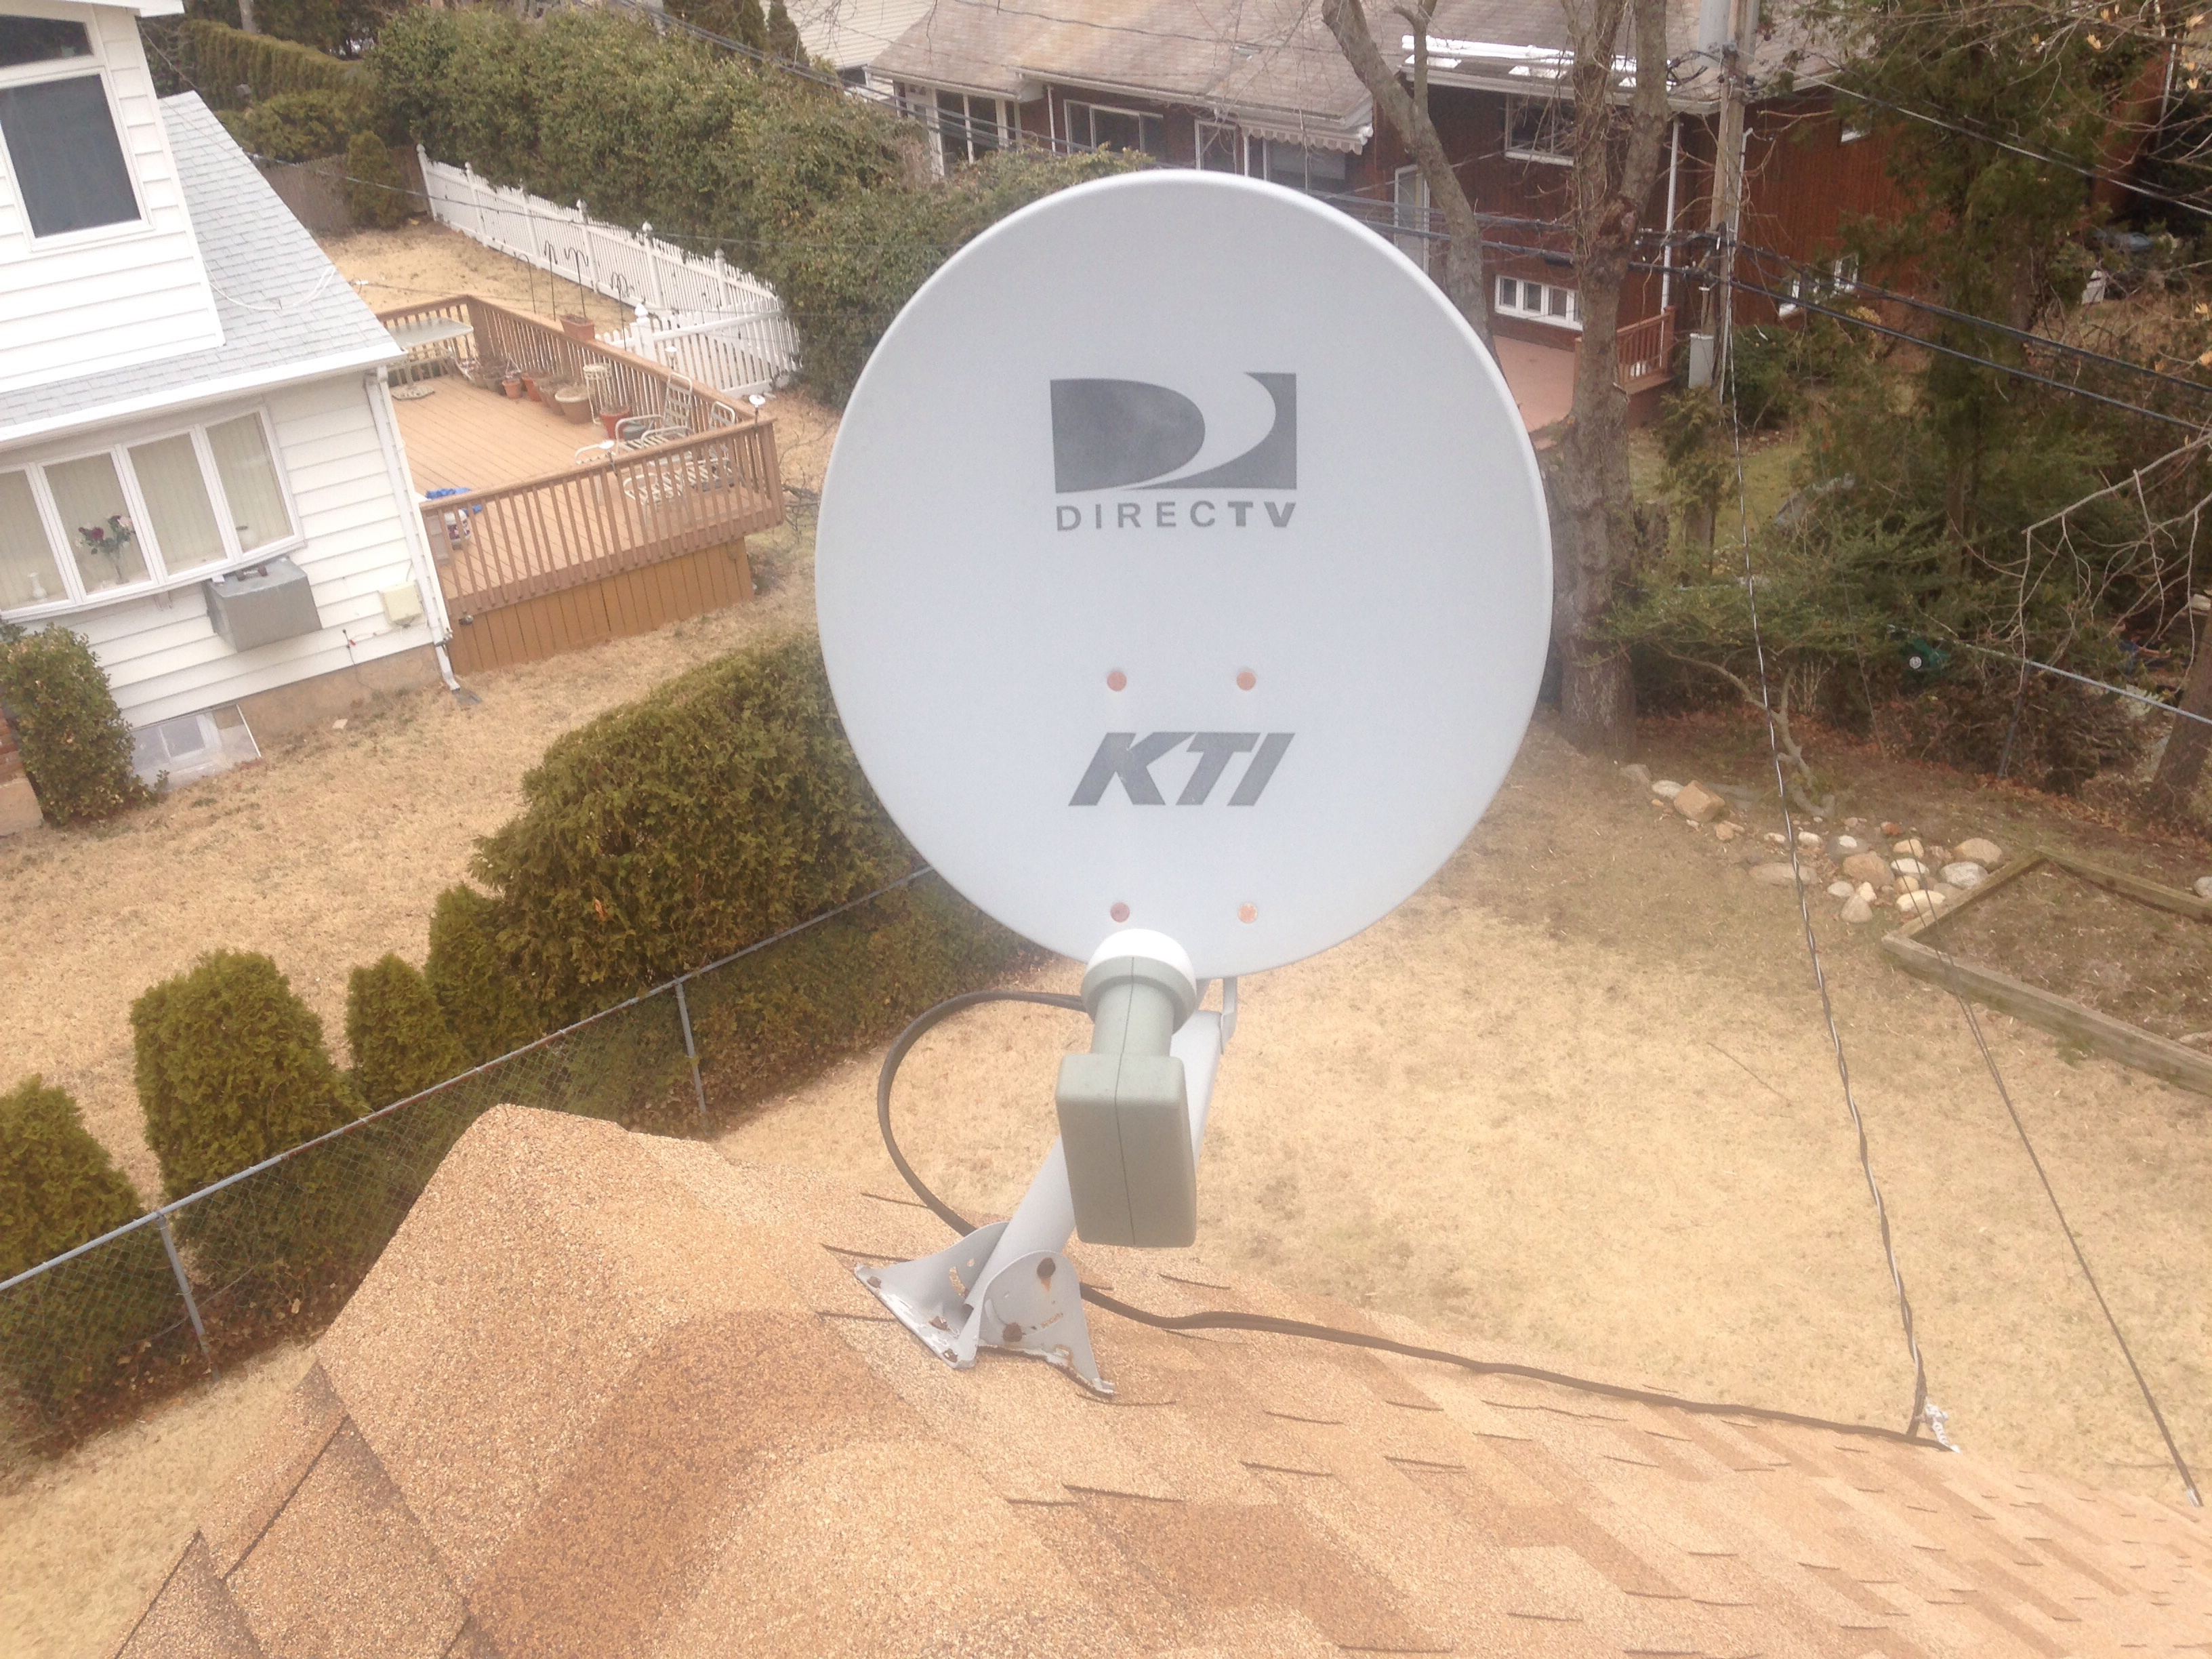 Satelite Dishes Are A Source For Leaks